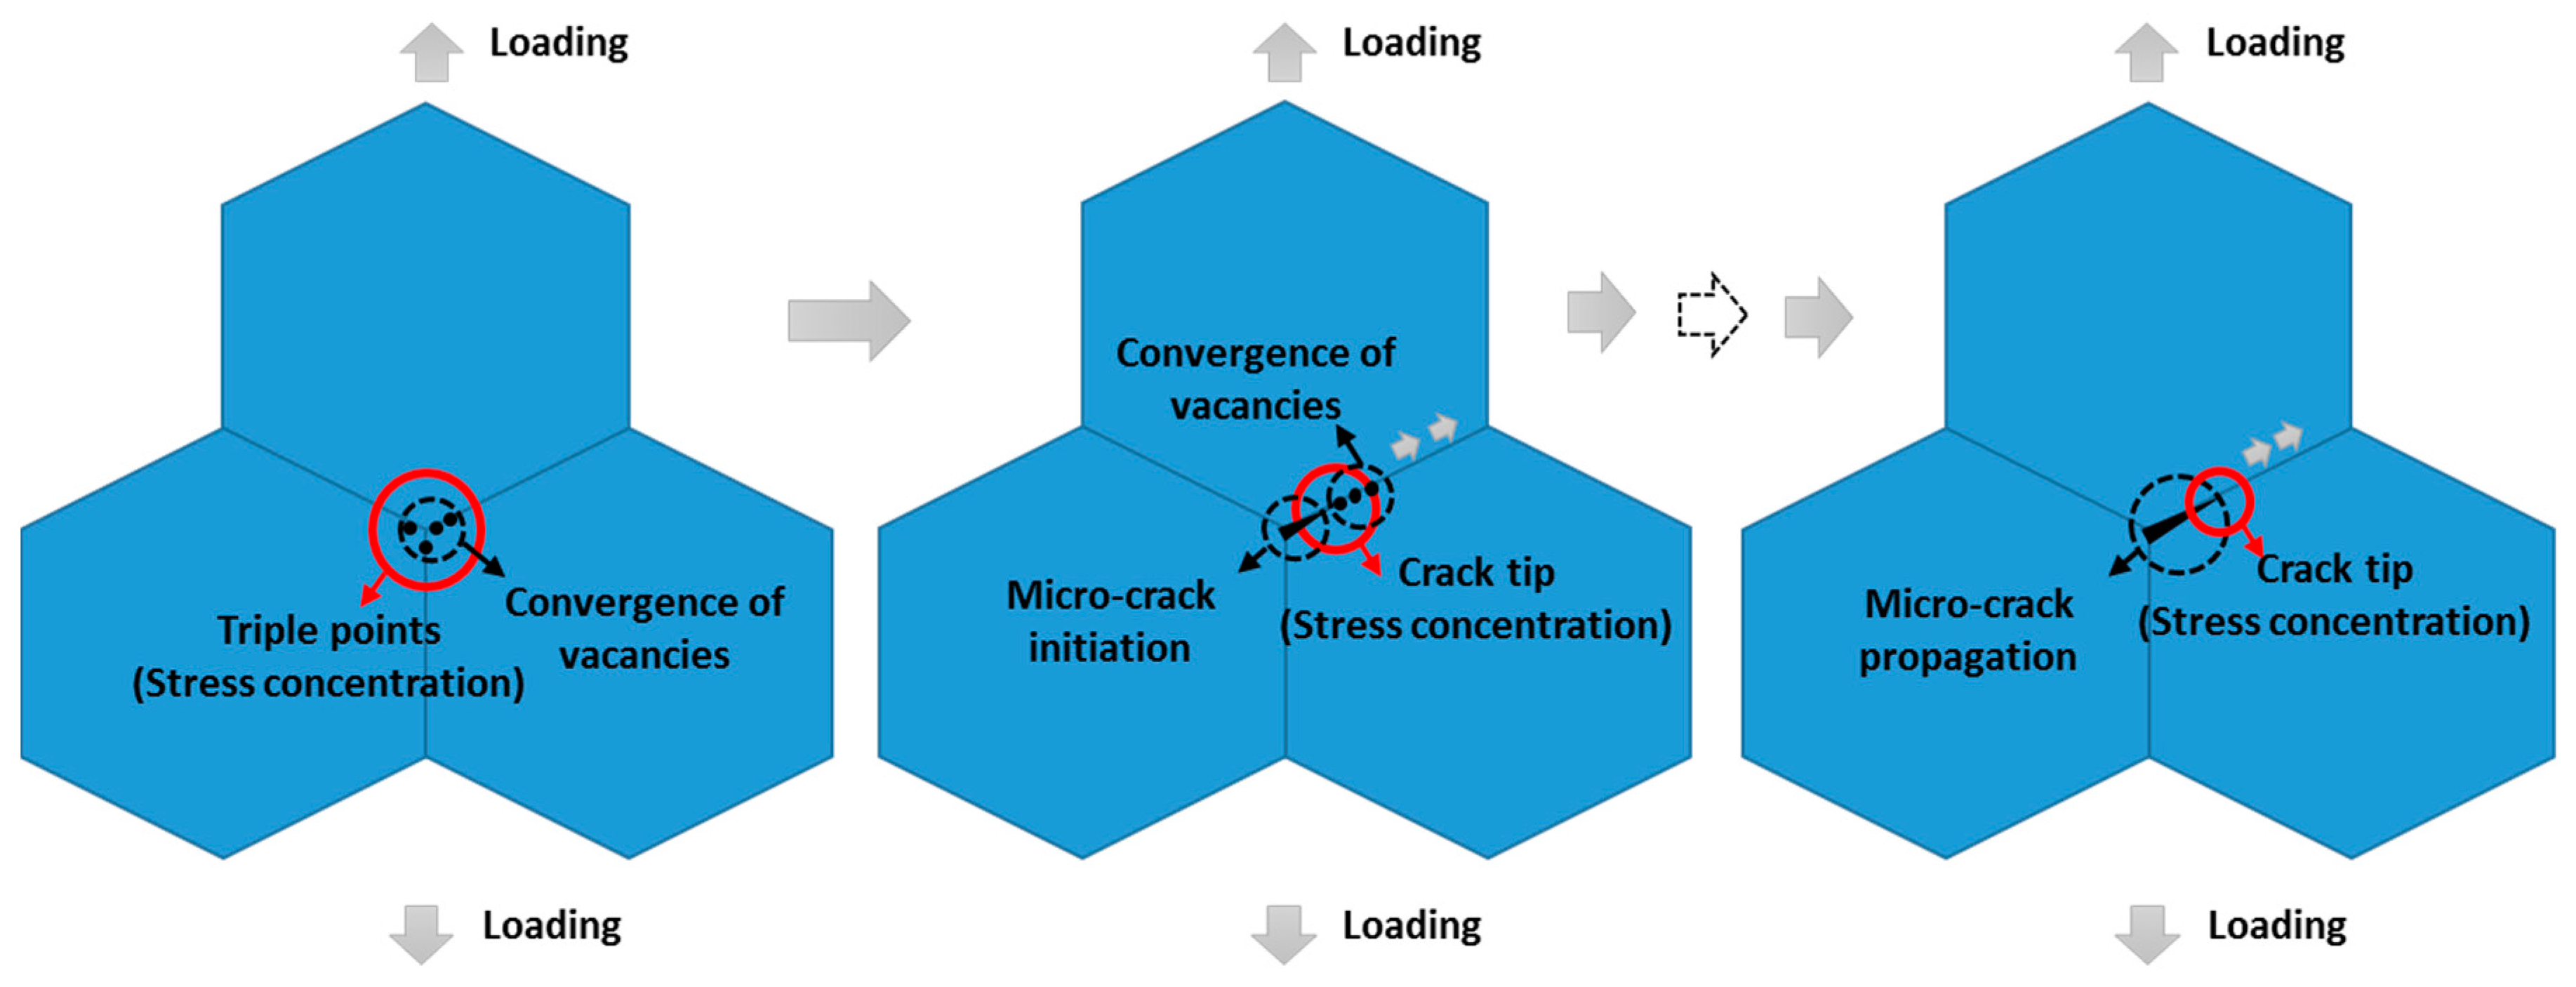 fatigue crack growth mechanisms in superalloys overview